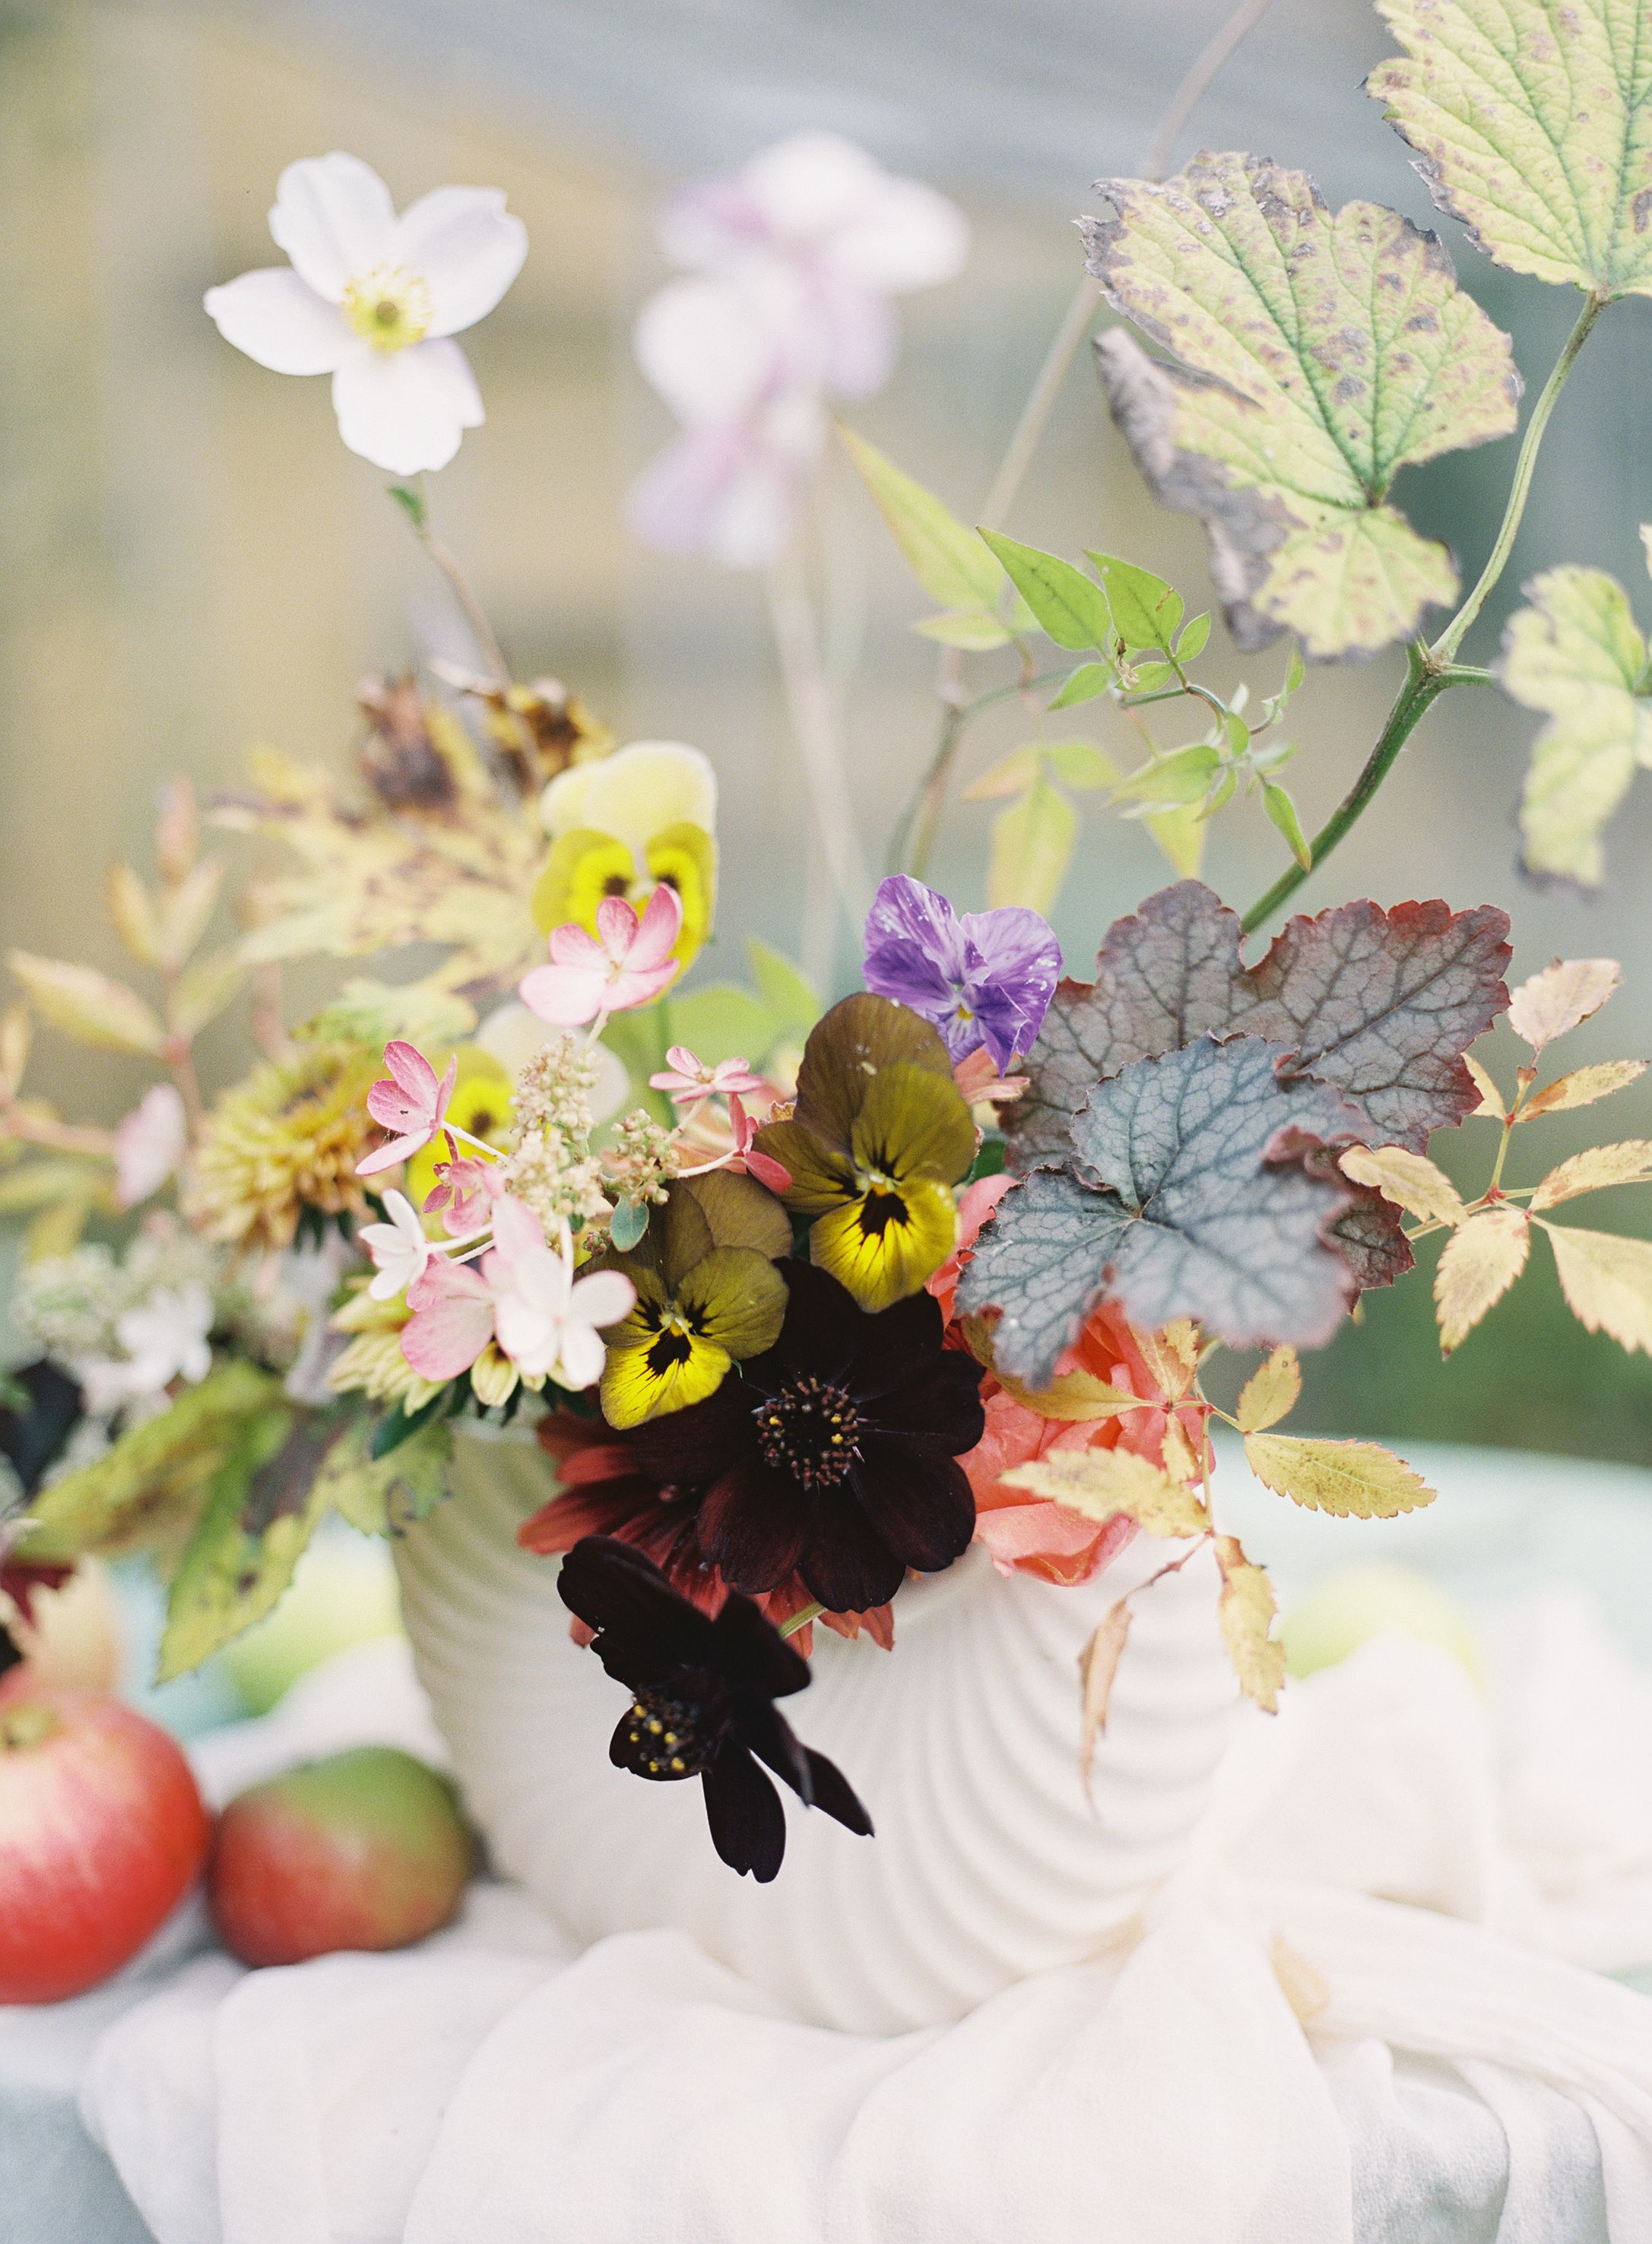 Pin by Ying K on FLORA 植物群 Fall wedding flowers, Spring